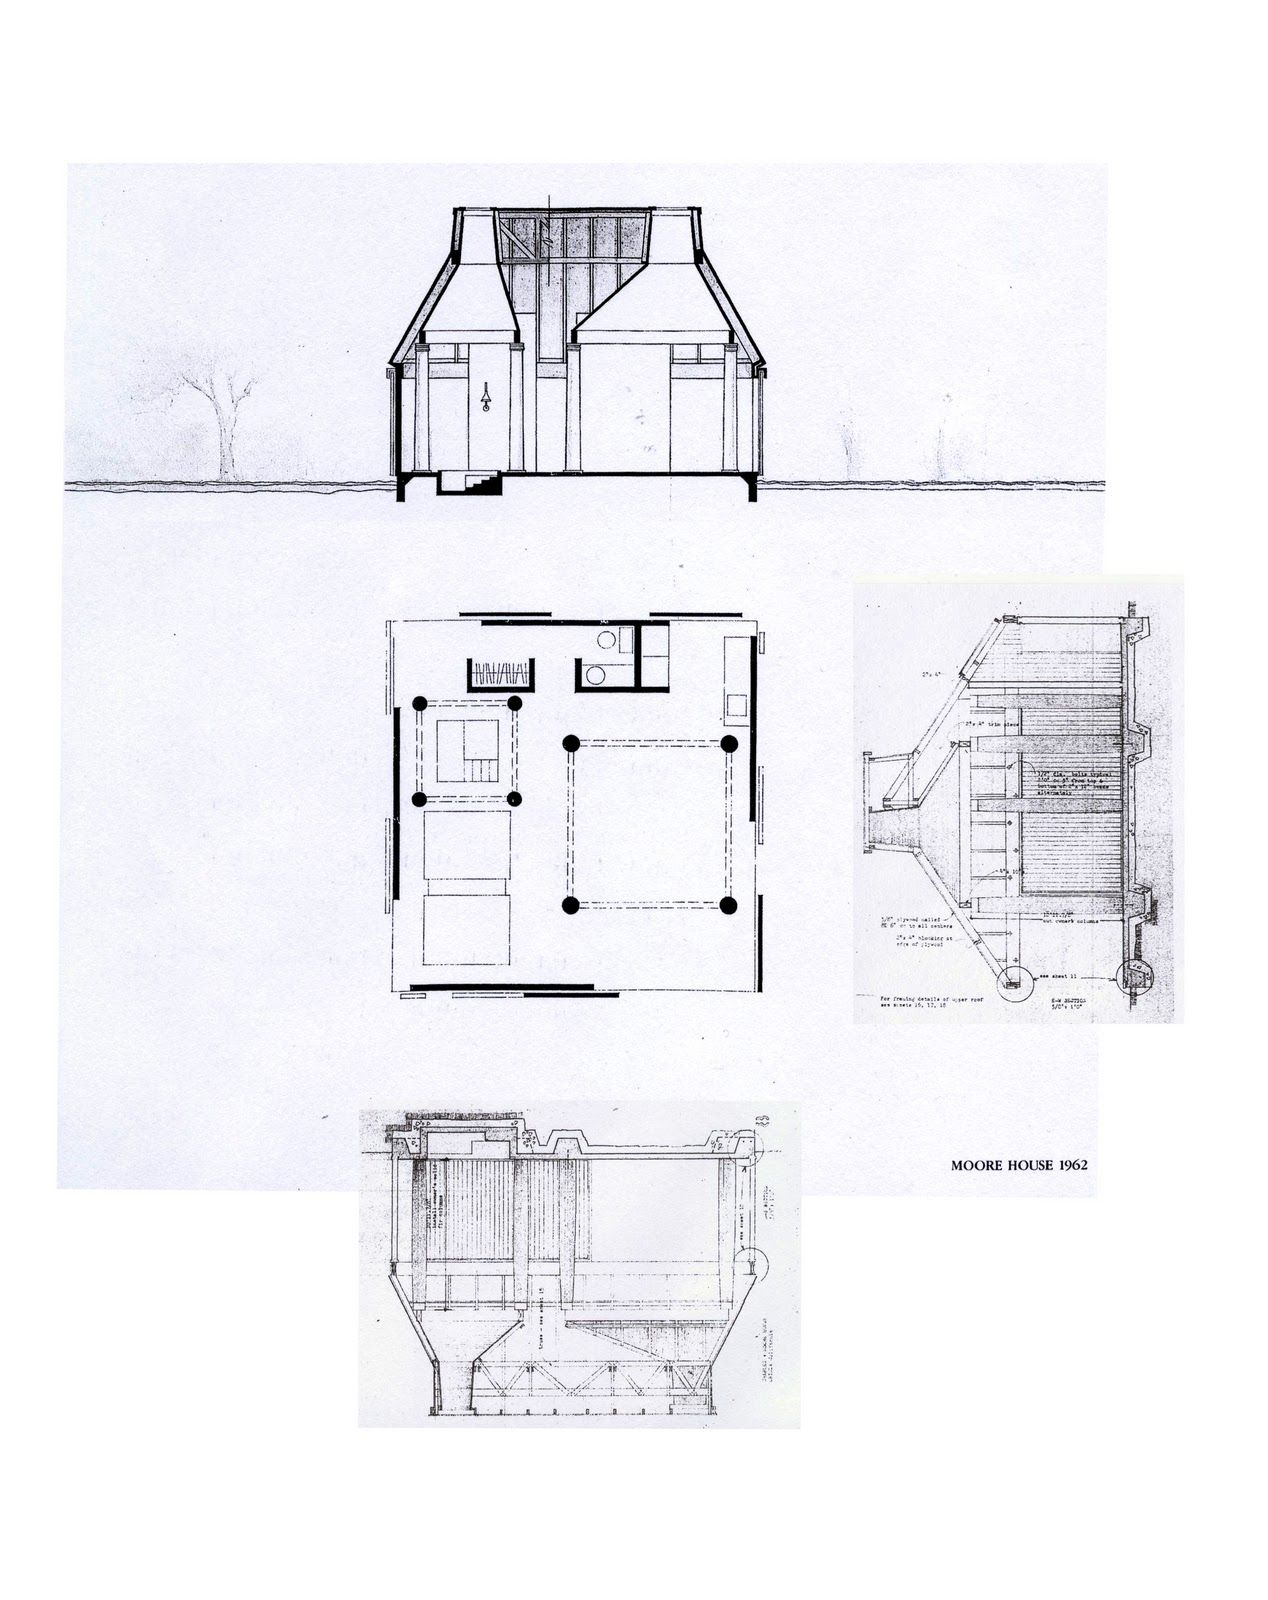 20110311 Que Significa Simultaneidad Architectural Section Architecture Drawing Moore House